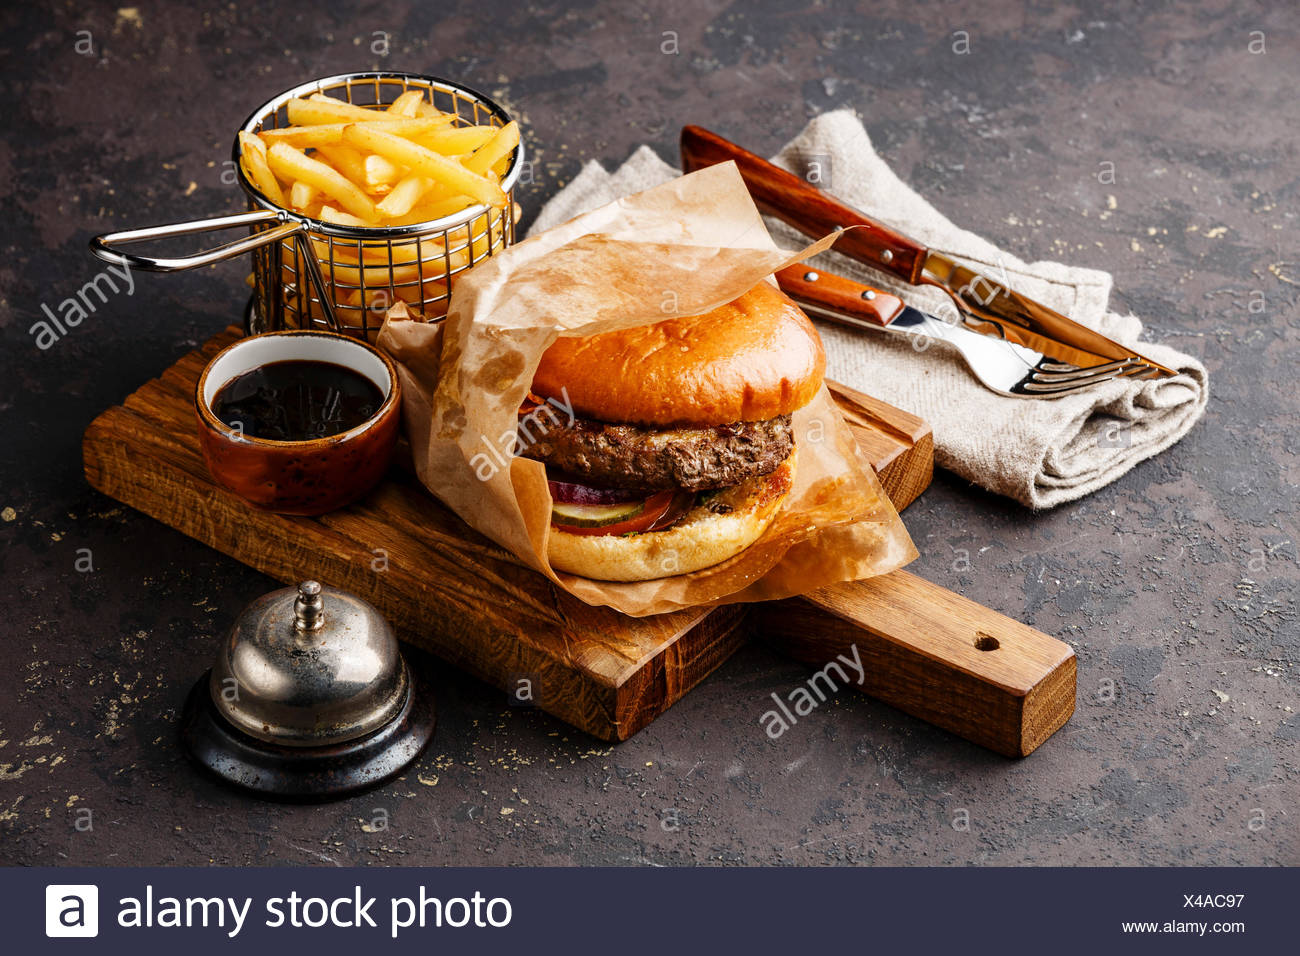 Burger with meat and French fries in basket on dark background and desk bell - Stock Image